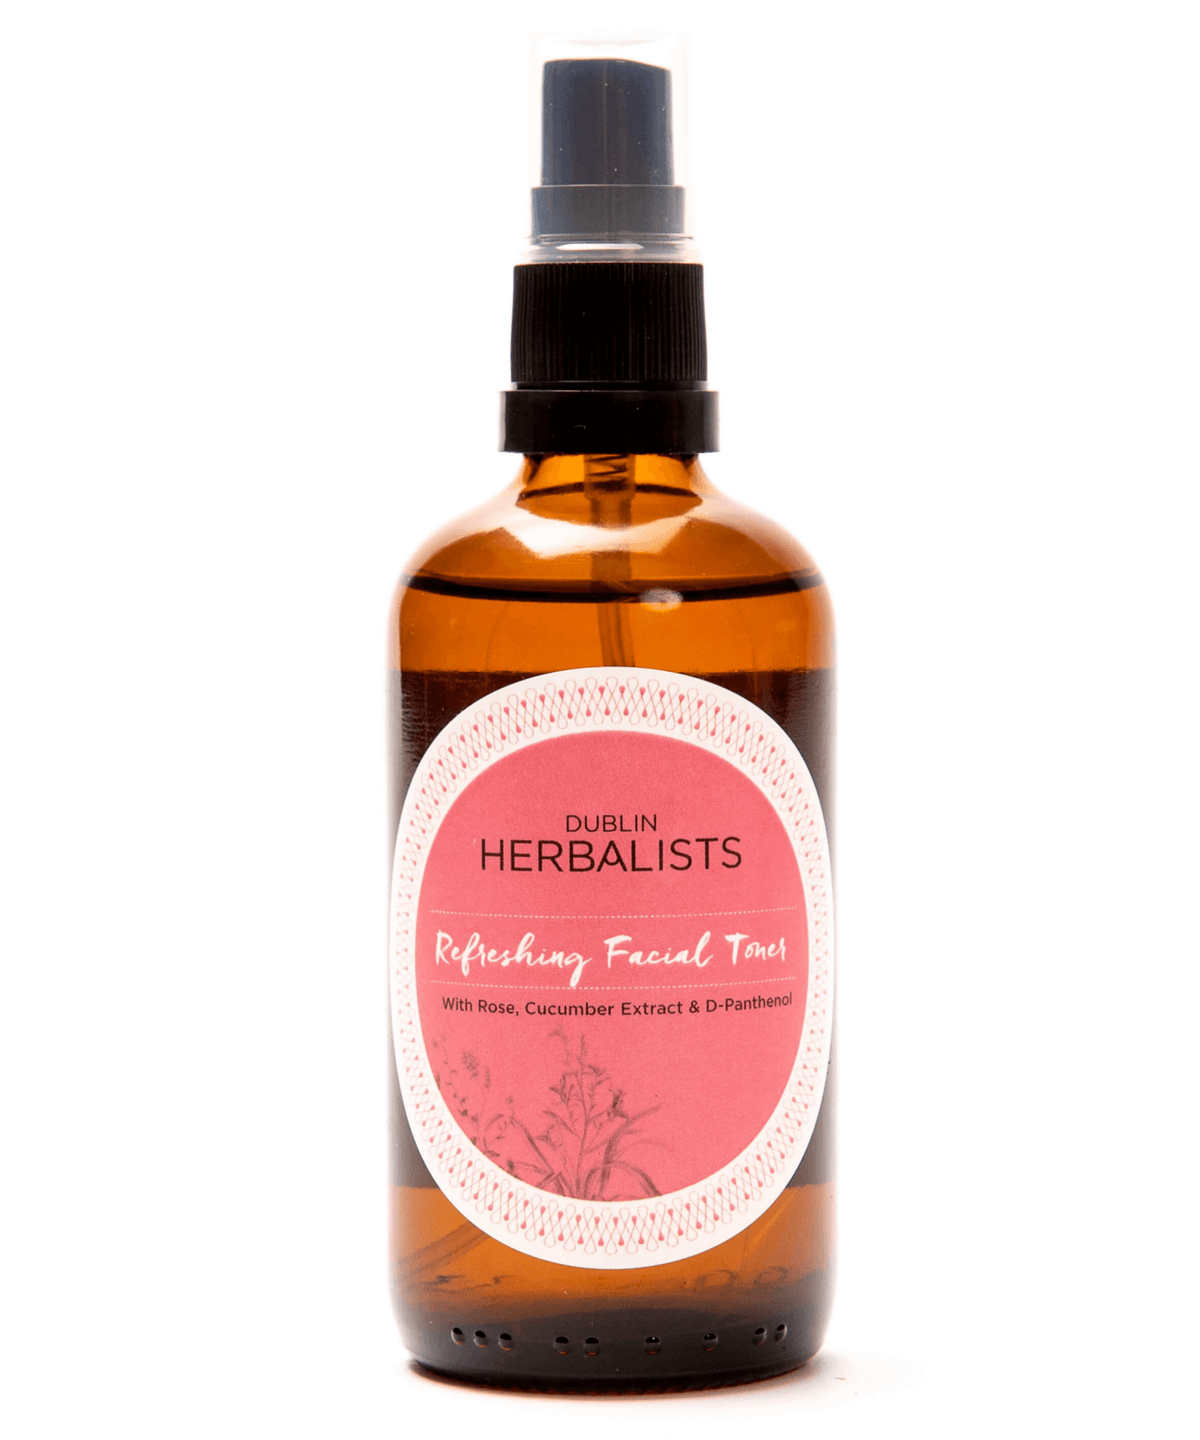 Refreshing Facial Toner - [Dublin Herbalists] - Skincare & Beauty - Irish Gifts